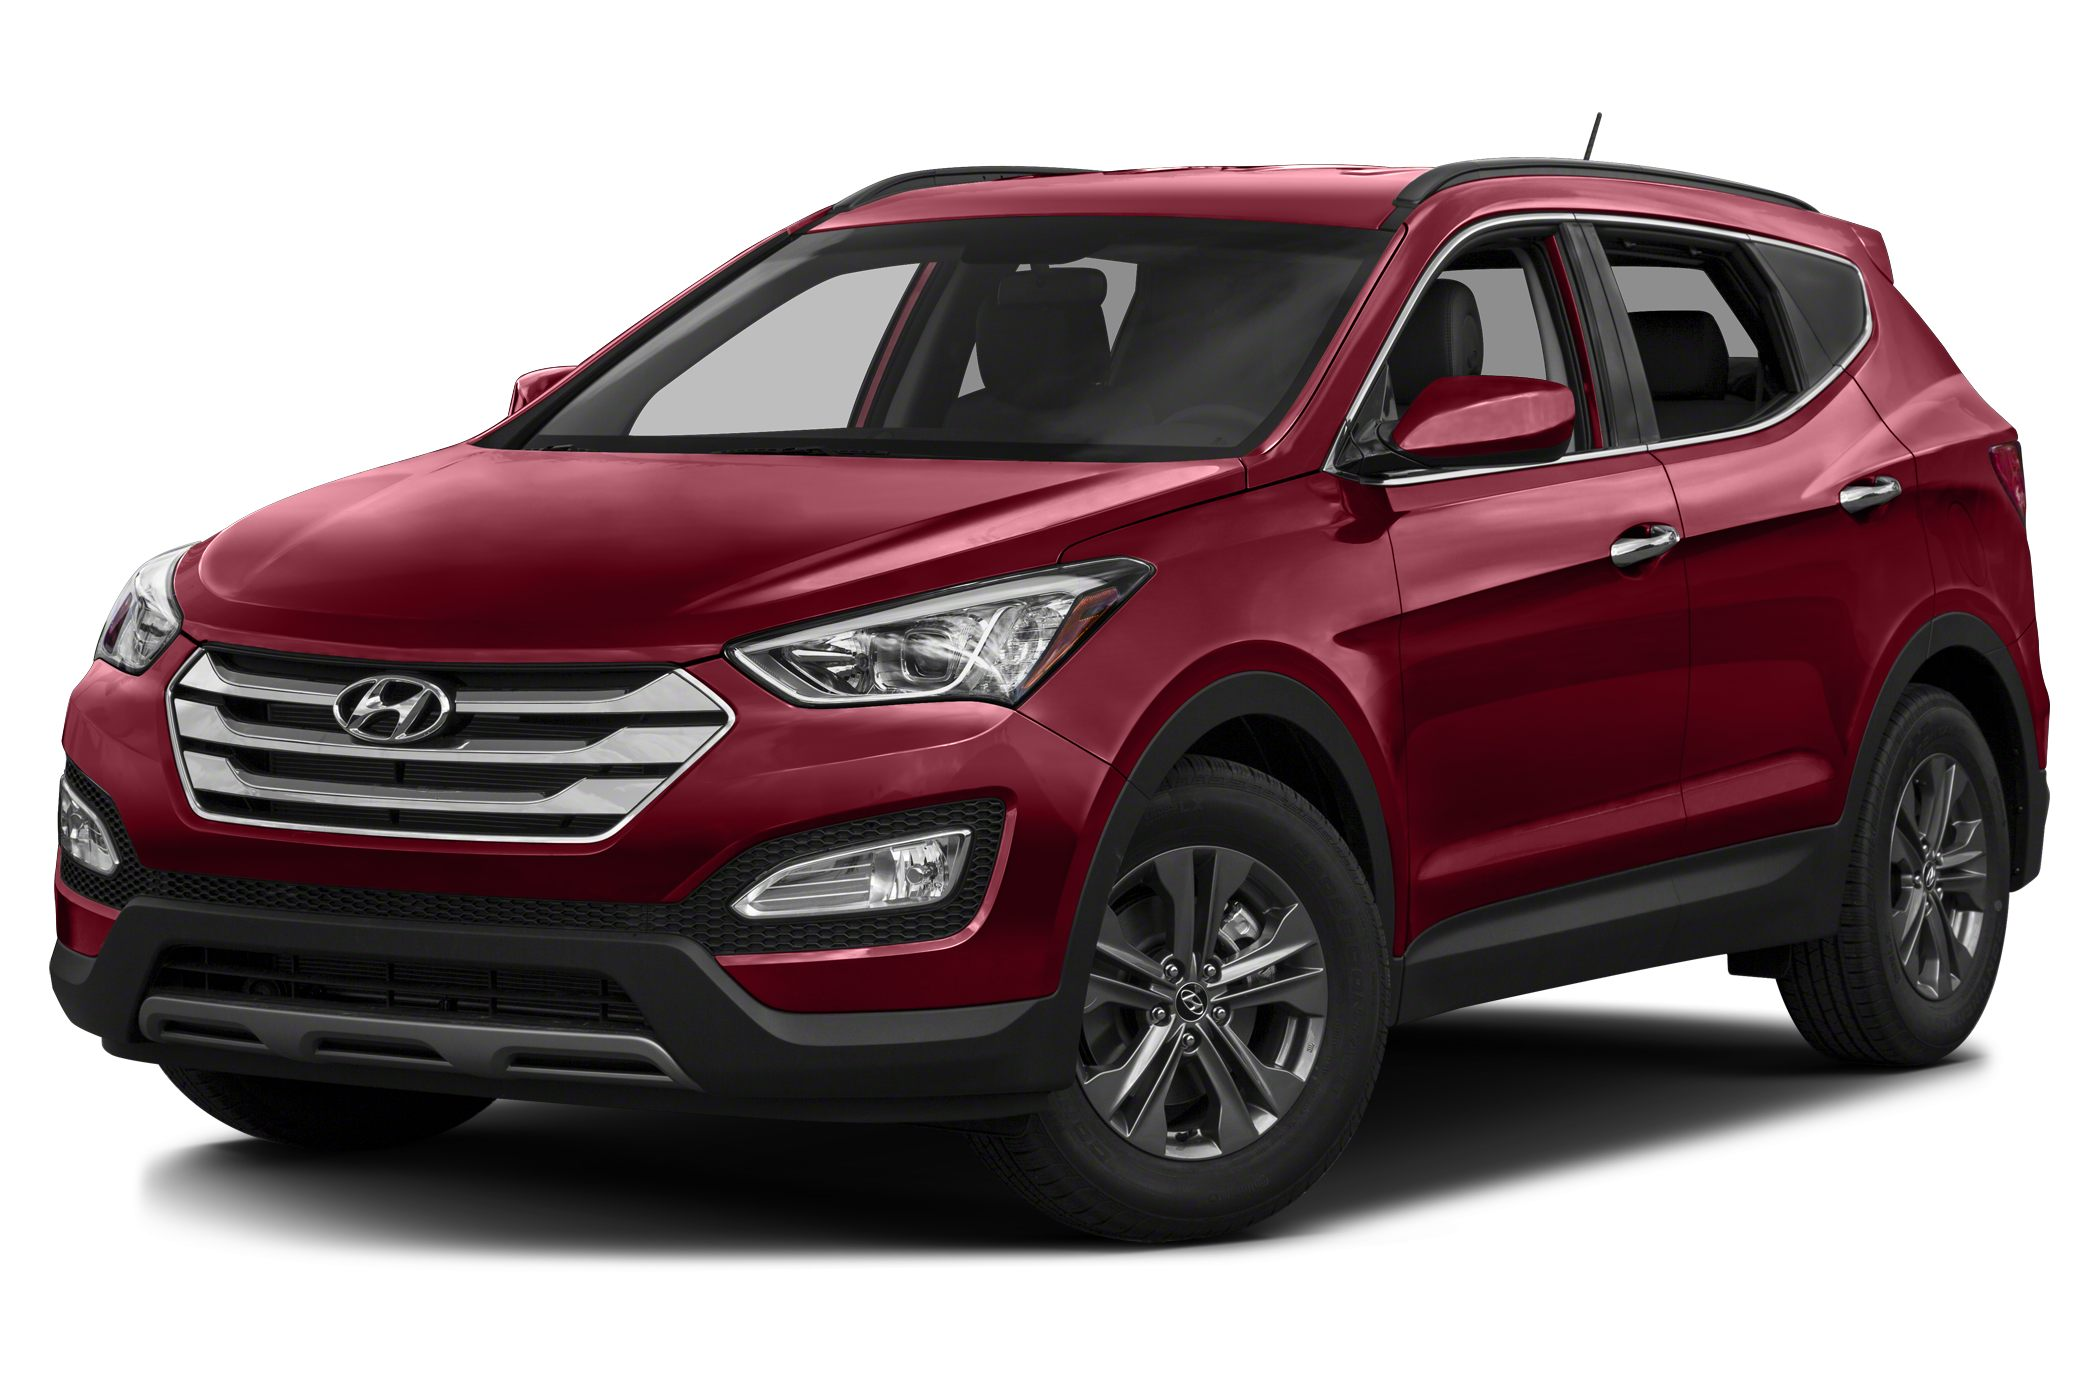 2015 Hyundai Santa Fe Sport 2.0L Turbo SUV for sale in Laconia for $34,652 with 100 miles